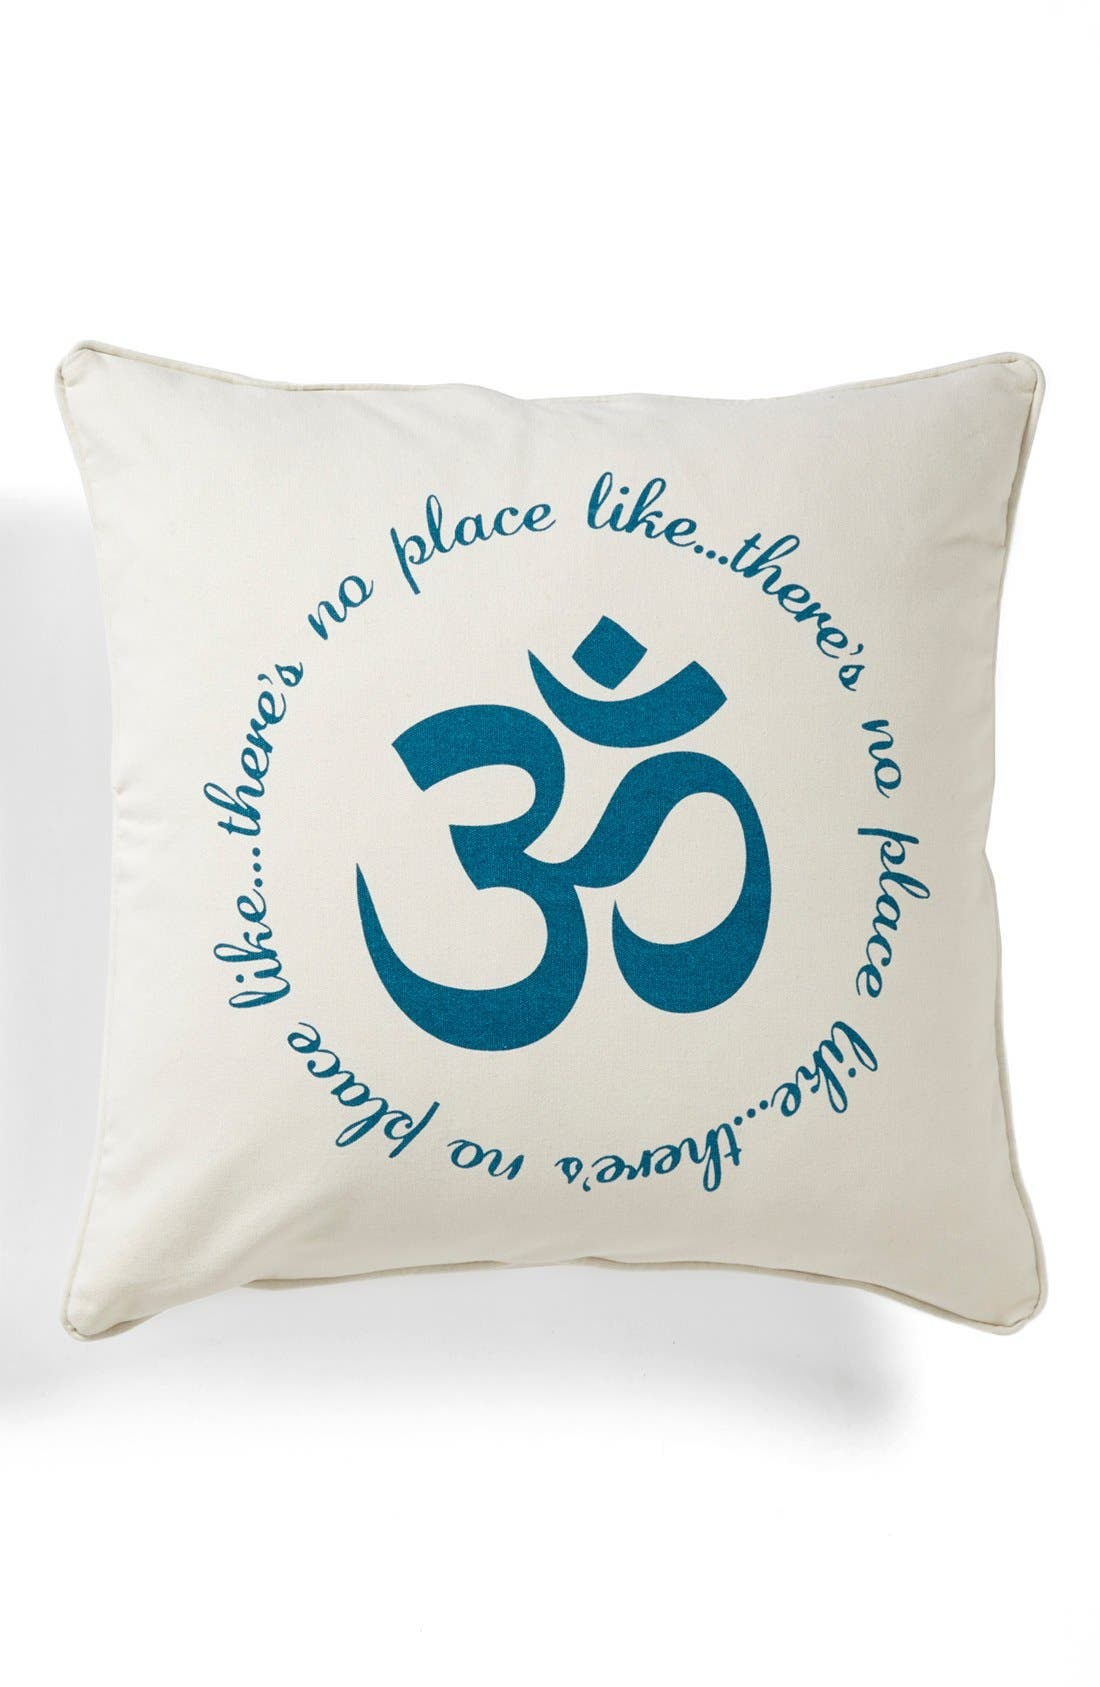 Alternate Image 1 Selected - Levtex 'No Place Like Om' Pillow